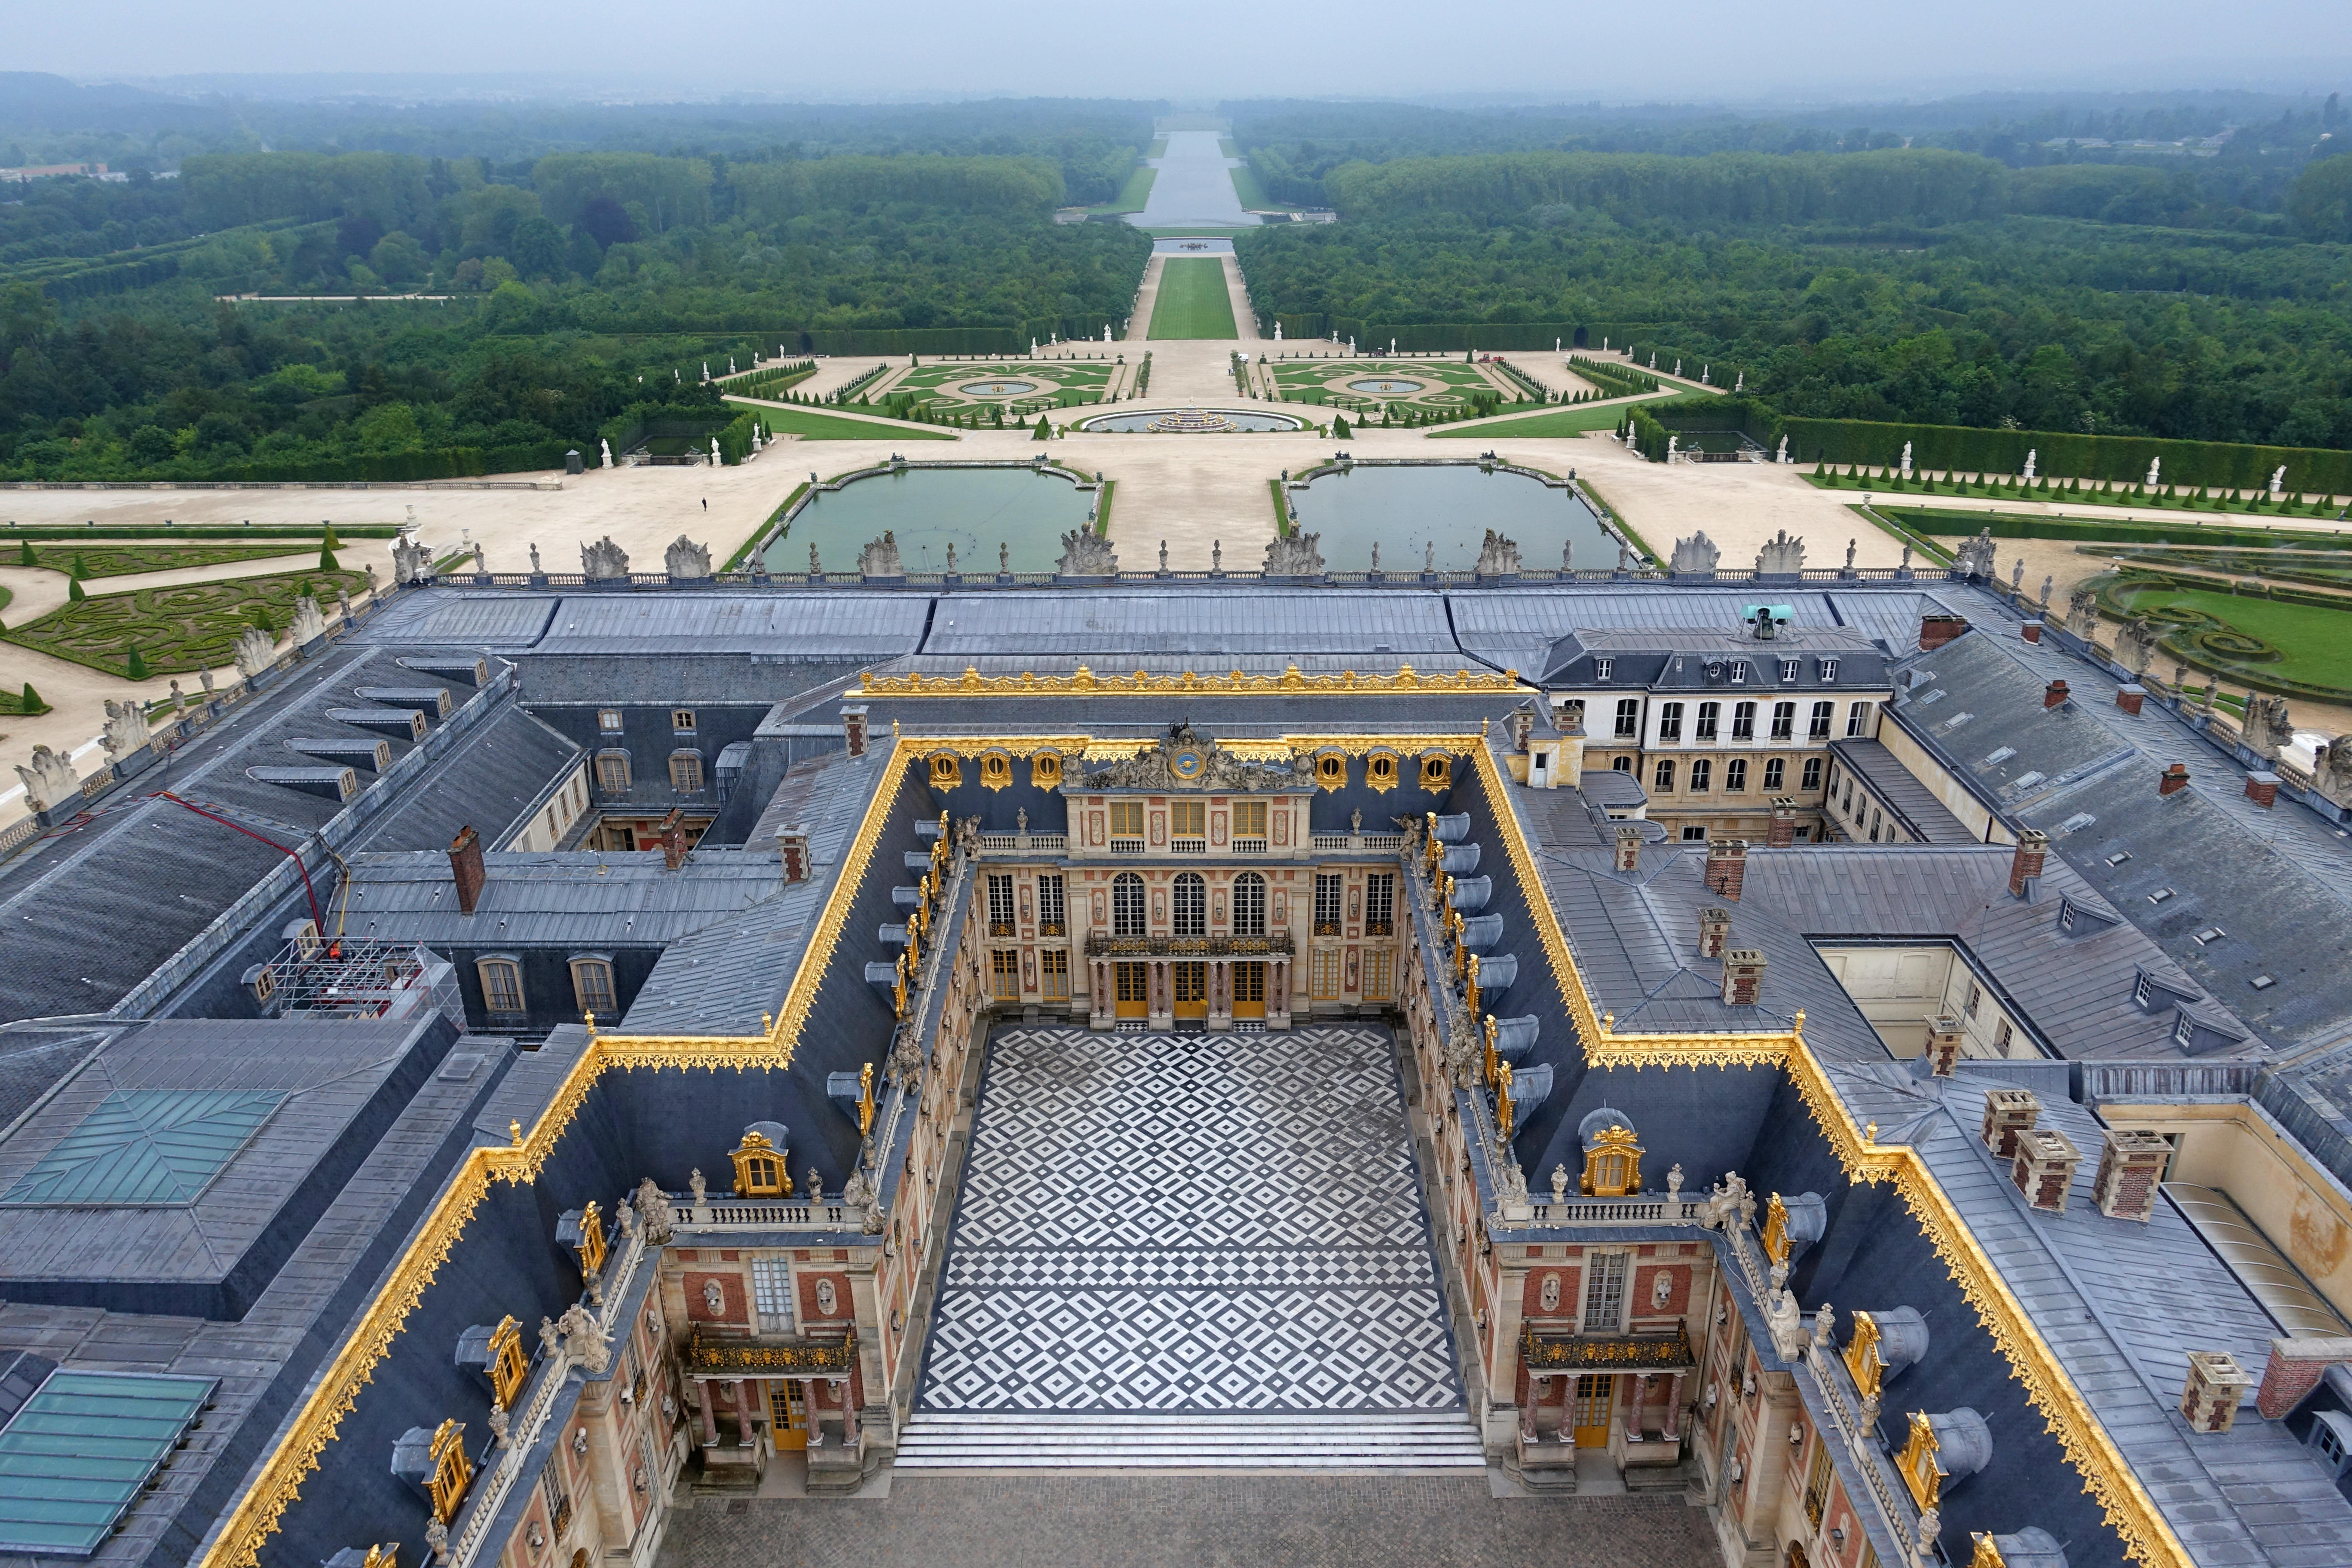 See the palace from above